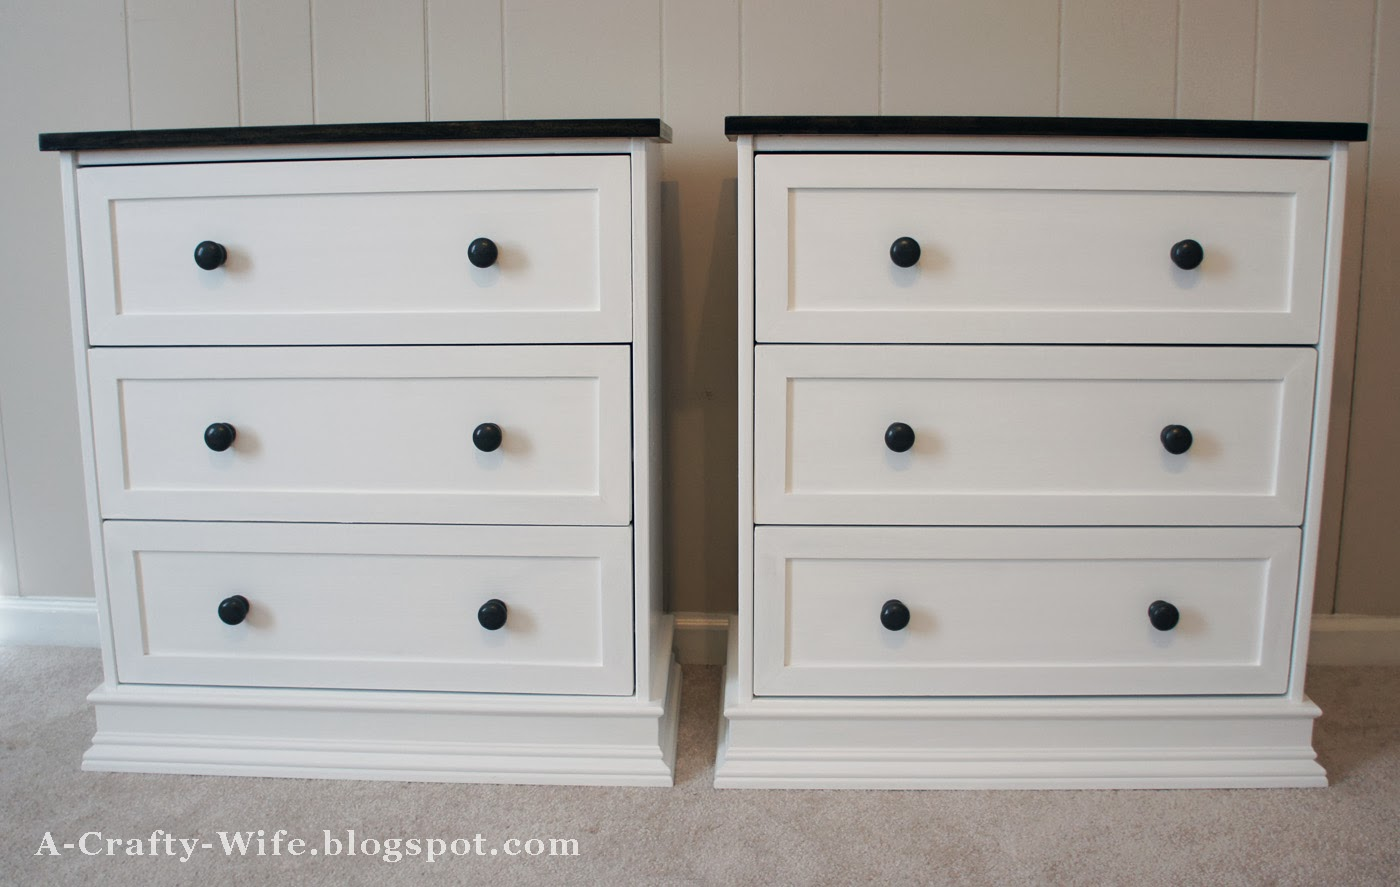 A crafty wife ikea rast hack part 2 the finishing touches for Bedroom dressers ikea